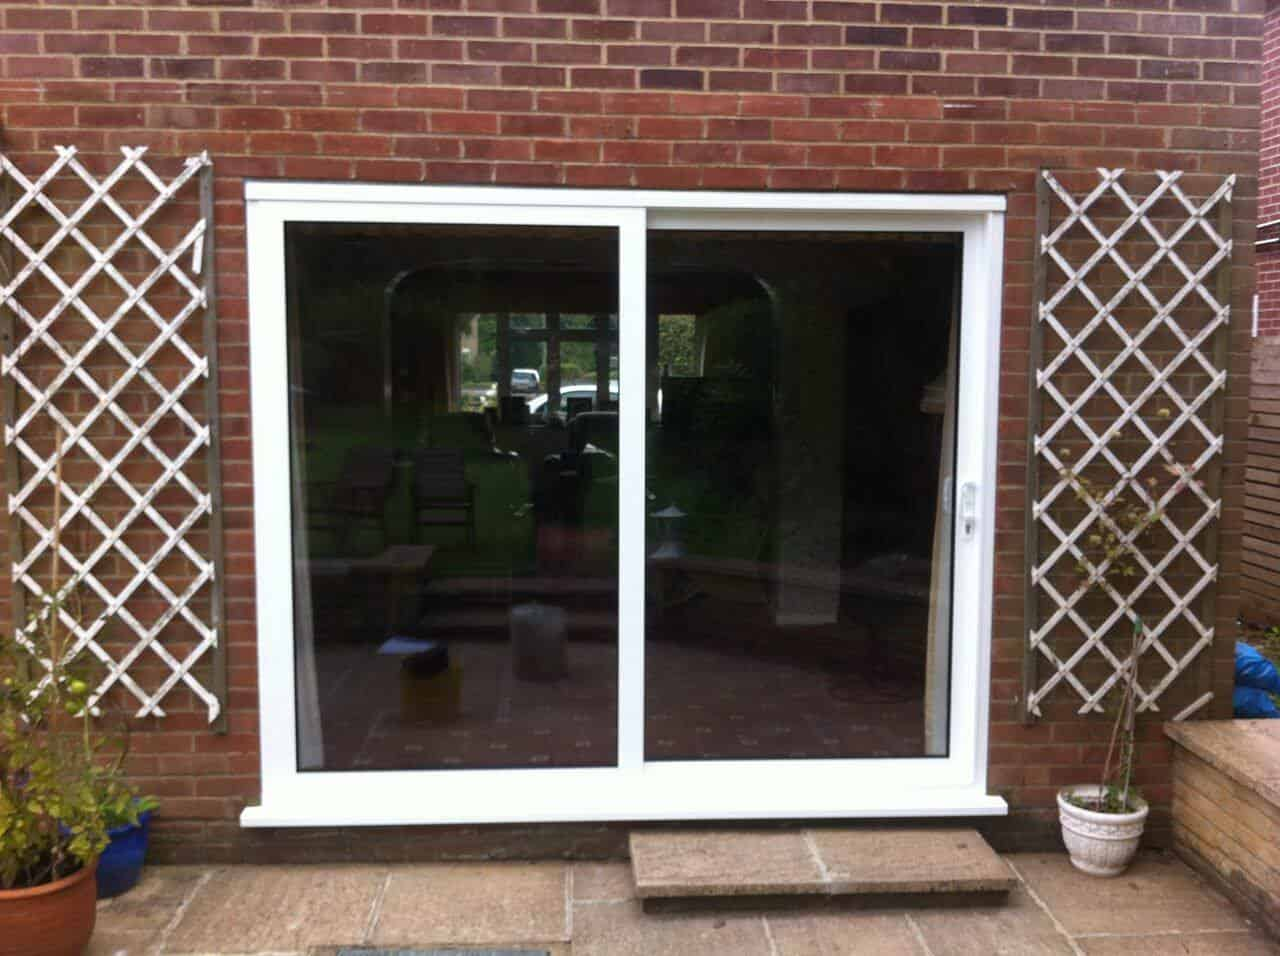 Upvc patio doors pangbourne double glazed doors reading for Double glazed patio doors sale